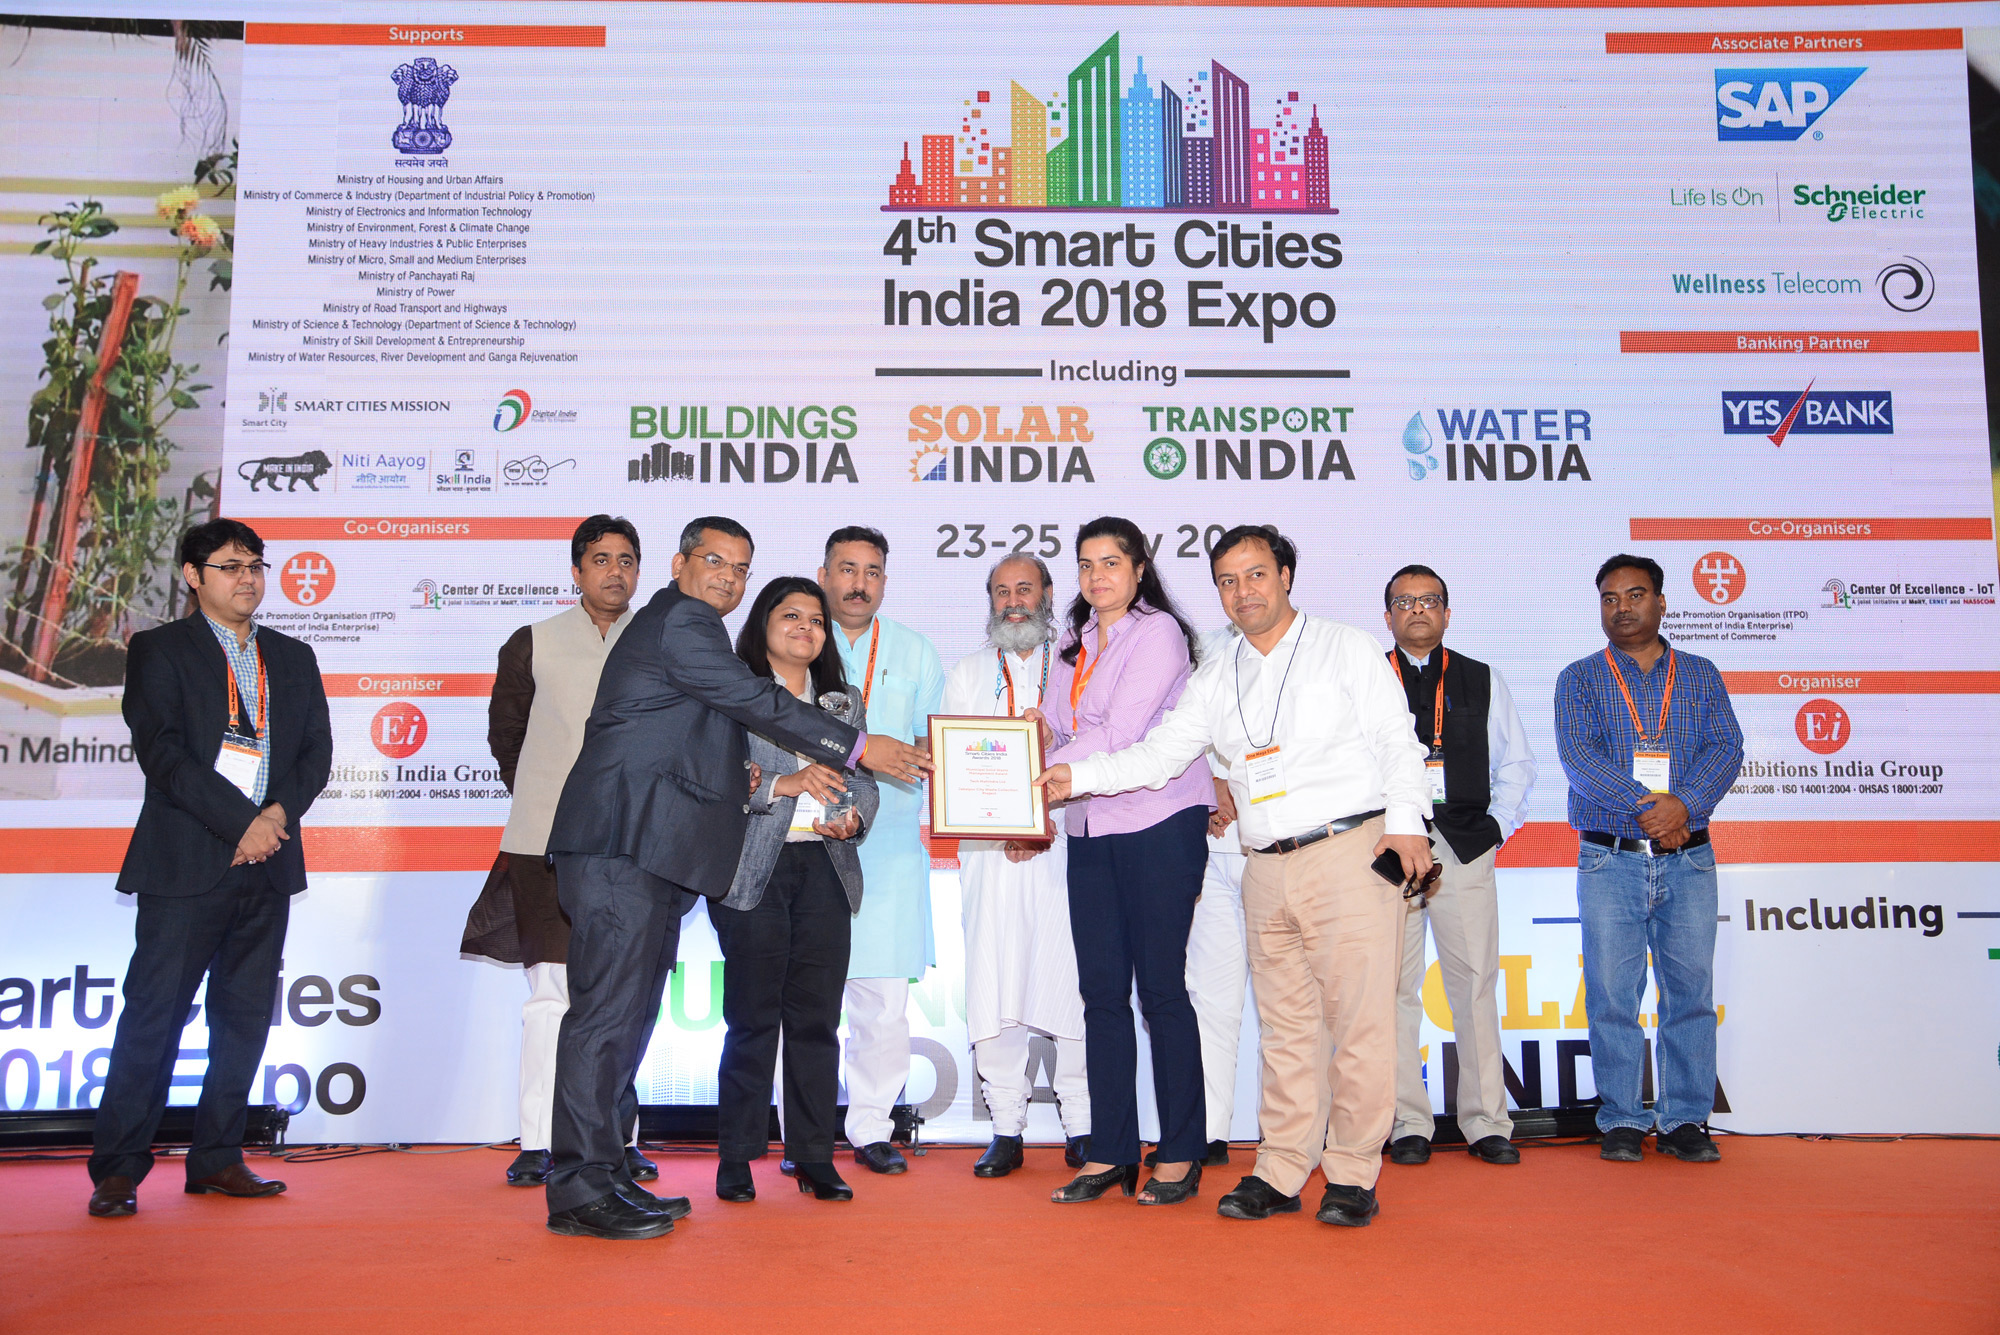 4th Smart Cities India 2018 Expo Spotlight On Housing For All